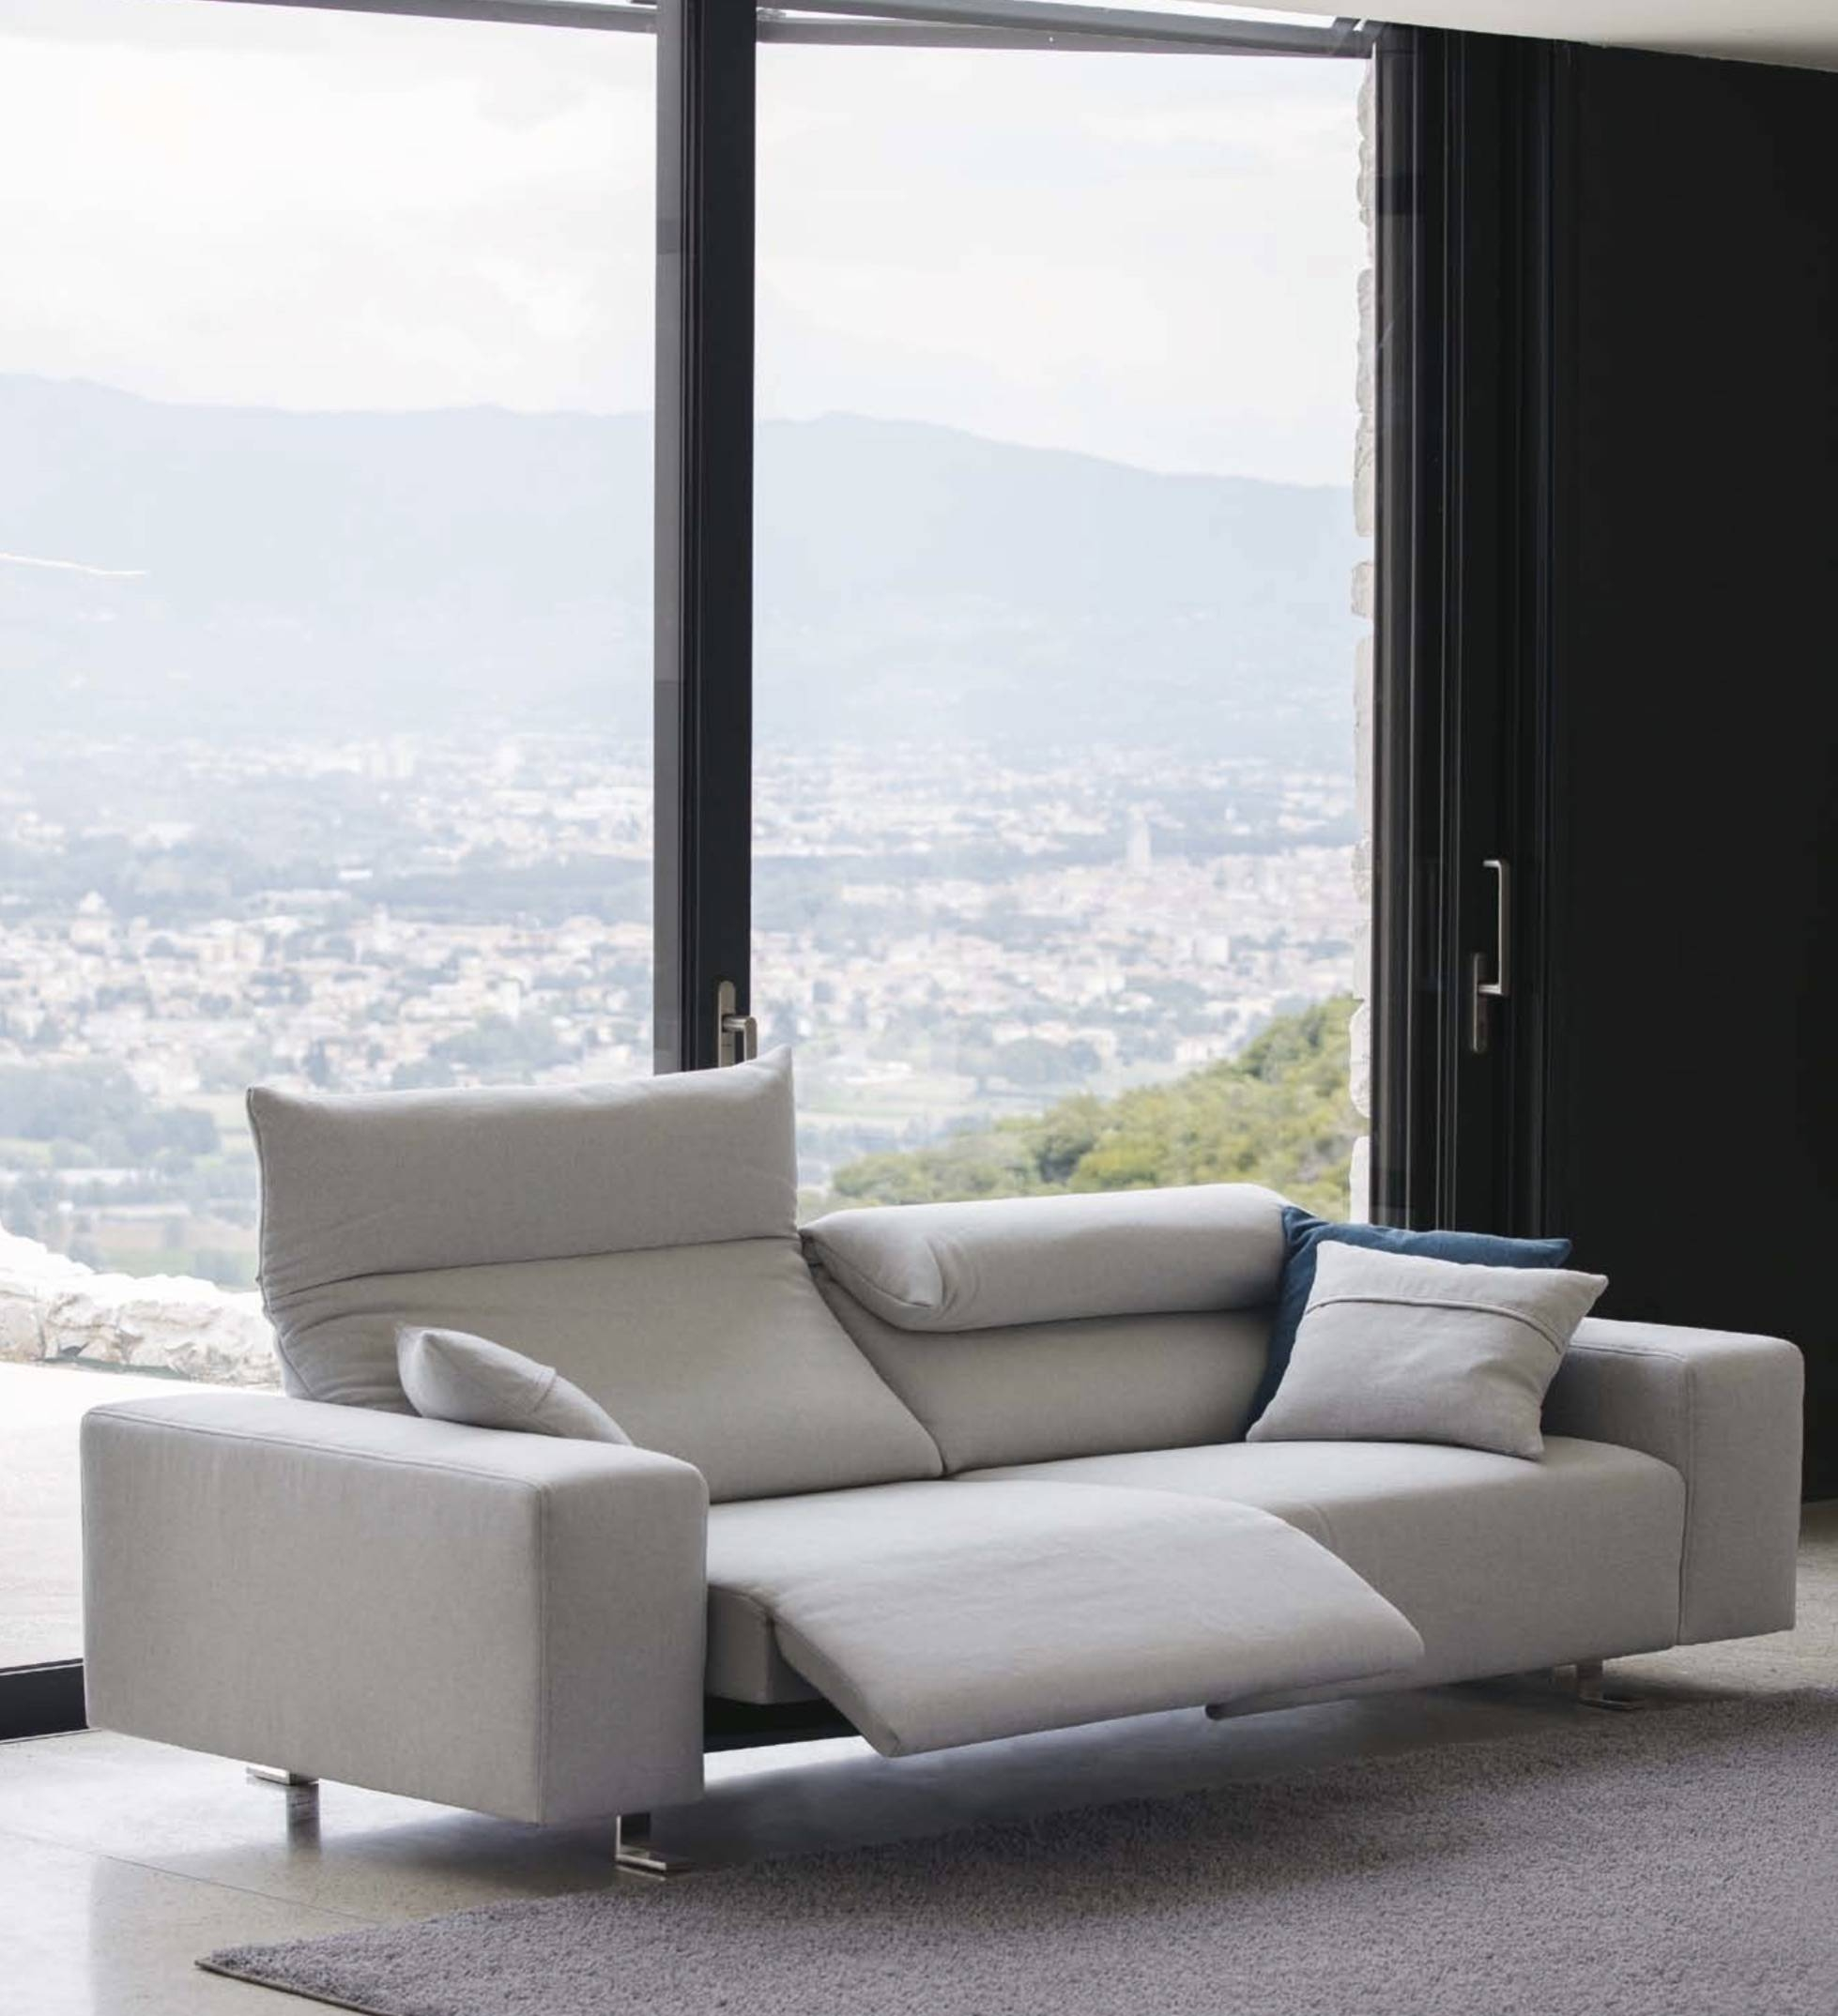 Italian Sofas At Momentoitalia - Modern Sofas,designer Sofas within Contemporary Sofas and Chairs (Image 10 of 15)